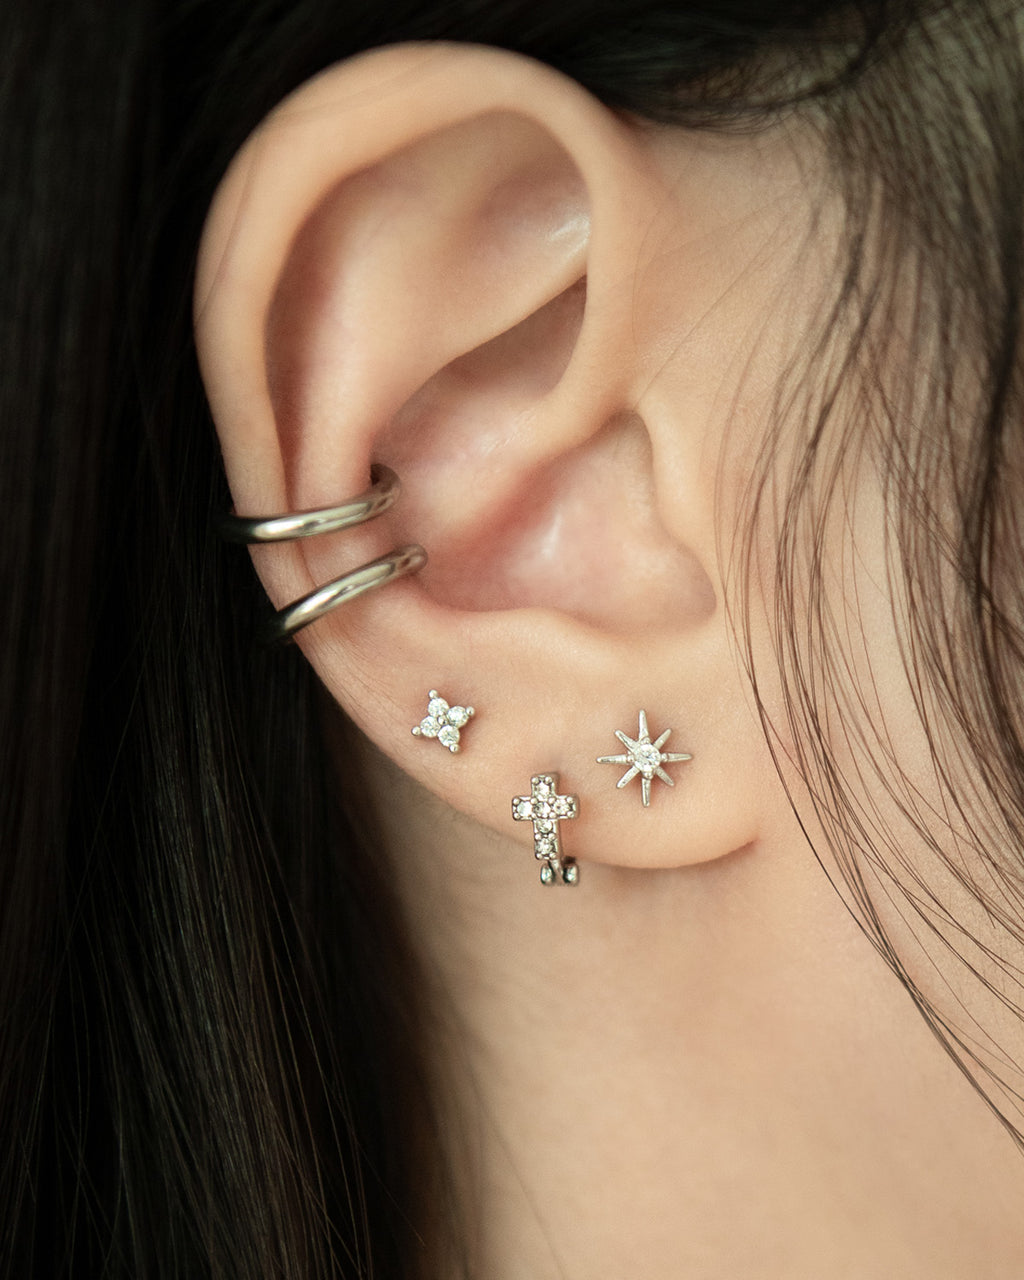 silver clover and starburst stud earrings @thehexad